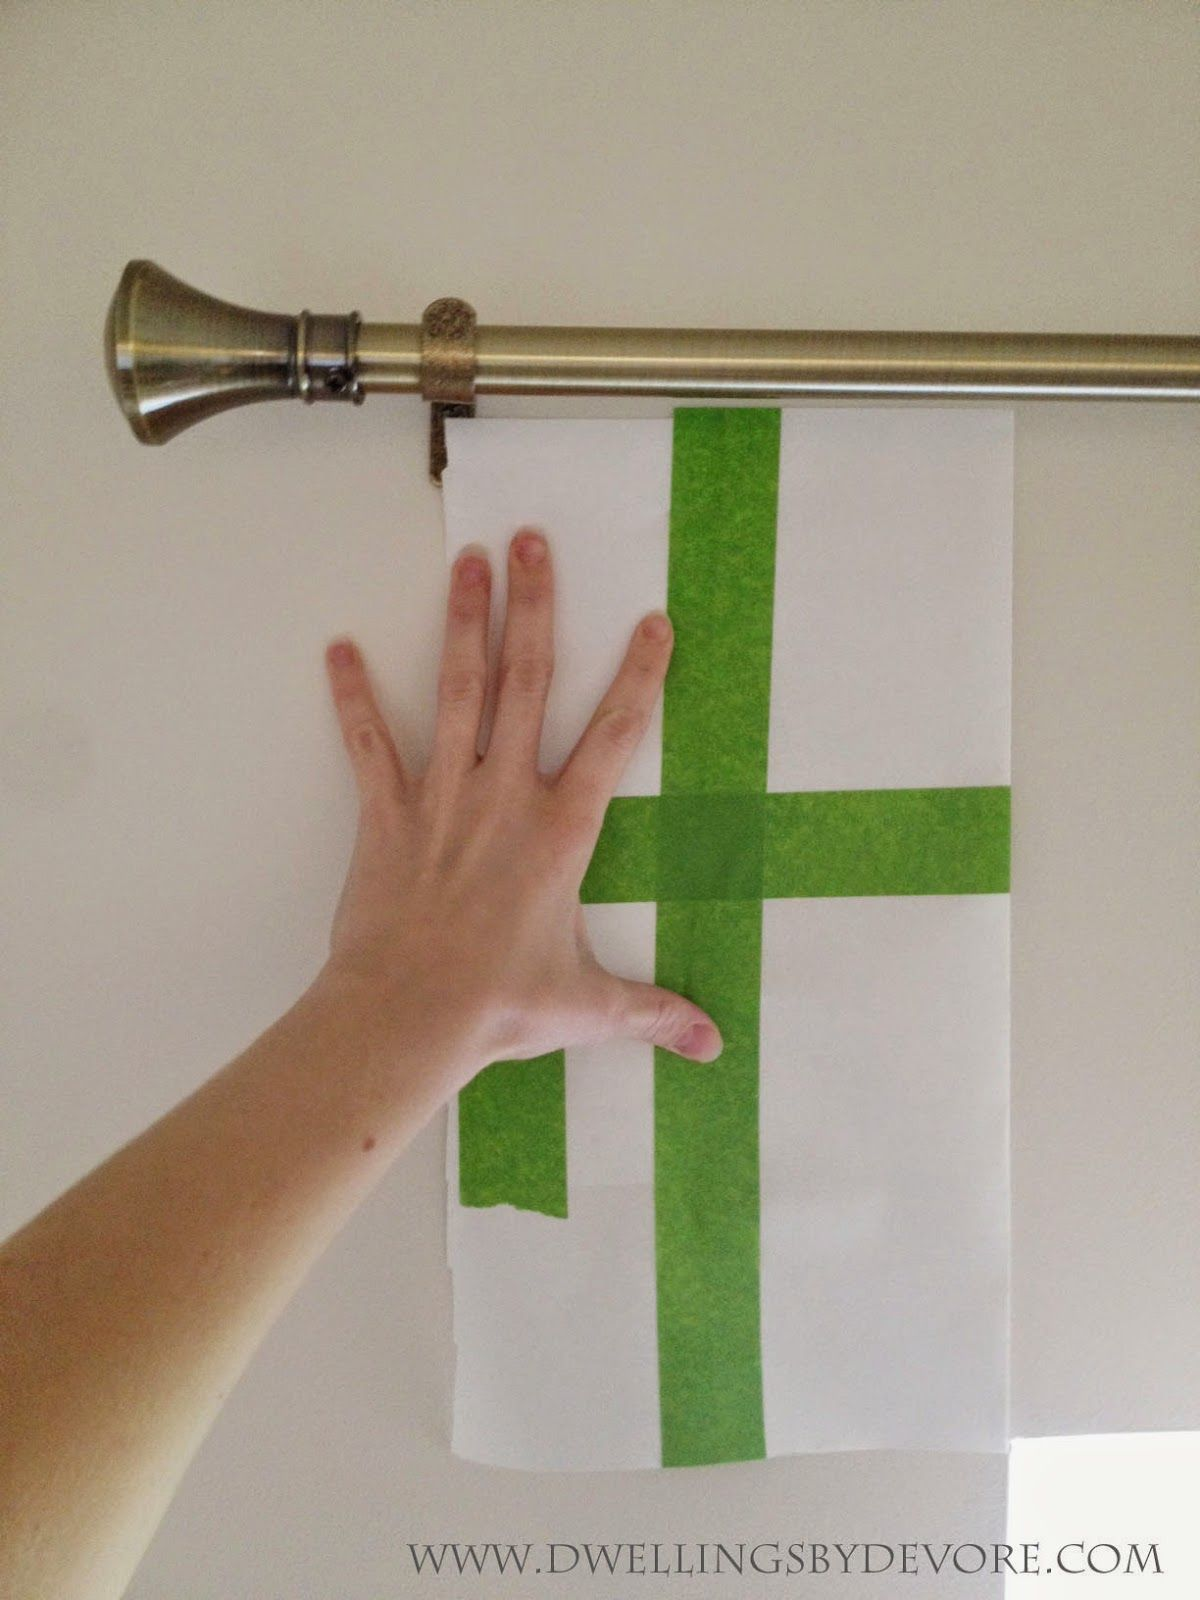 Make A Template To Hang Curtain Rods The Same Although I D Have Them From Ceiling Think My Window Isn T 100 Level Dwellings By Devore